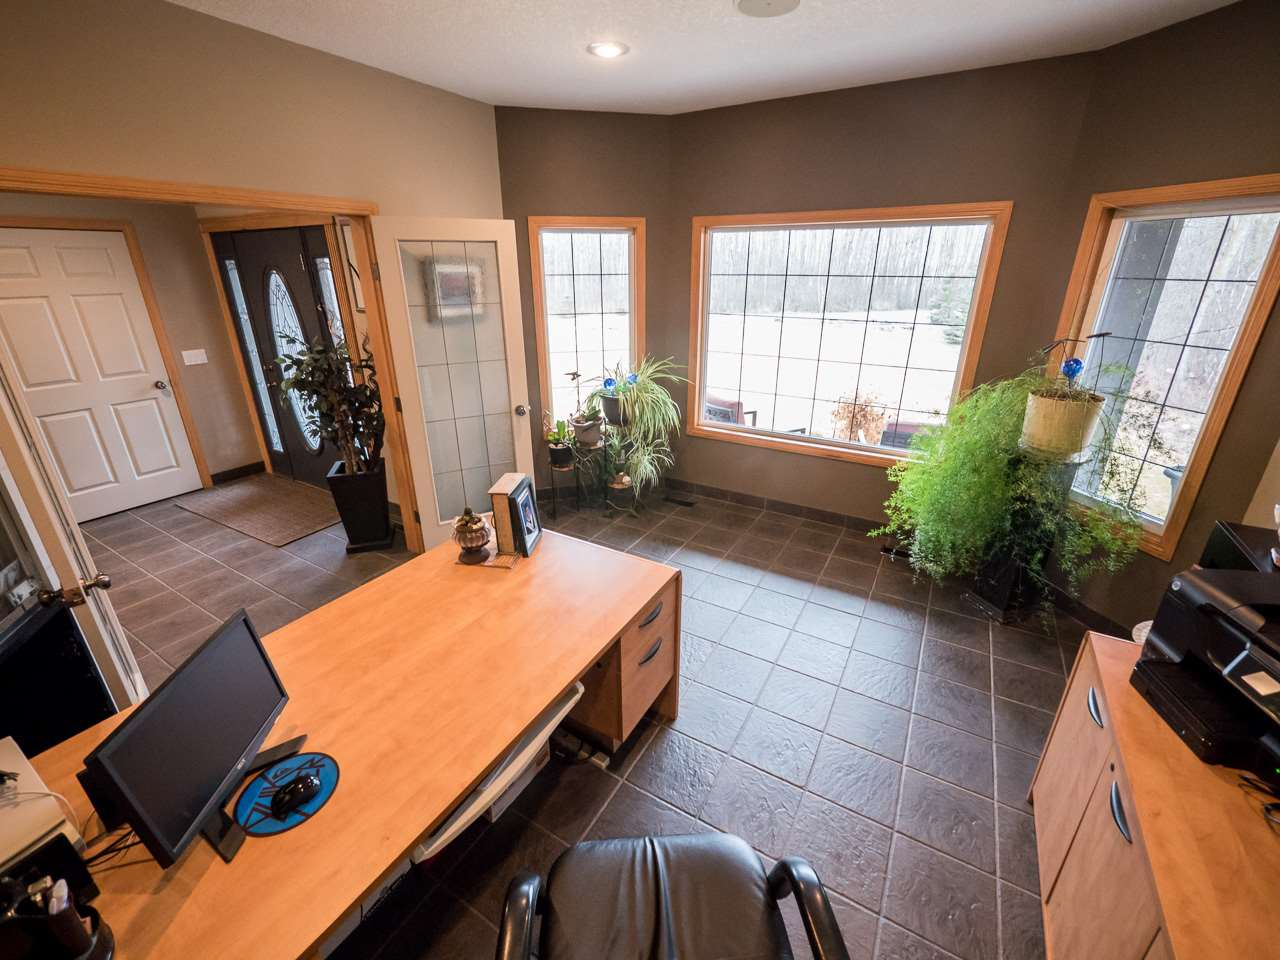 Photo 4: 51543 RR 220: Rural Strathcona County House for sale : MLS(r) # E4072257